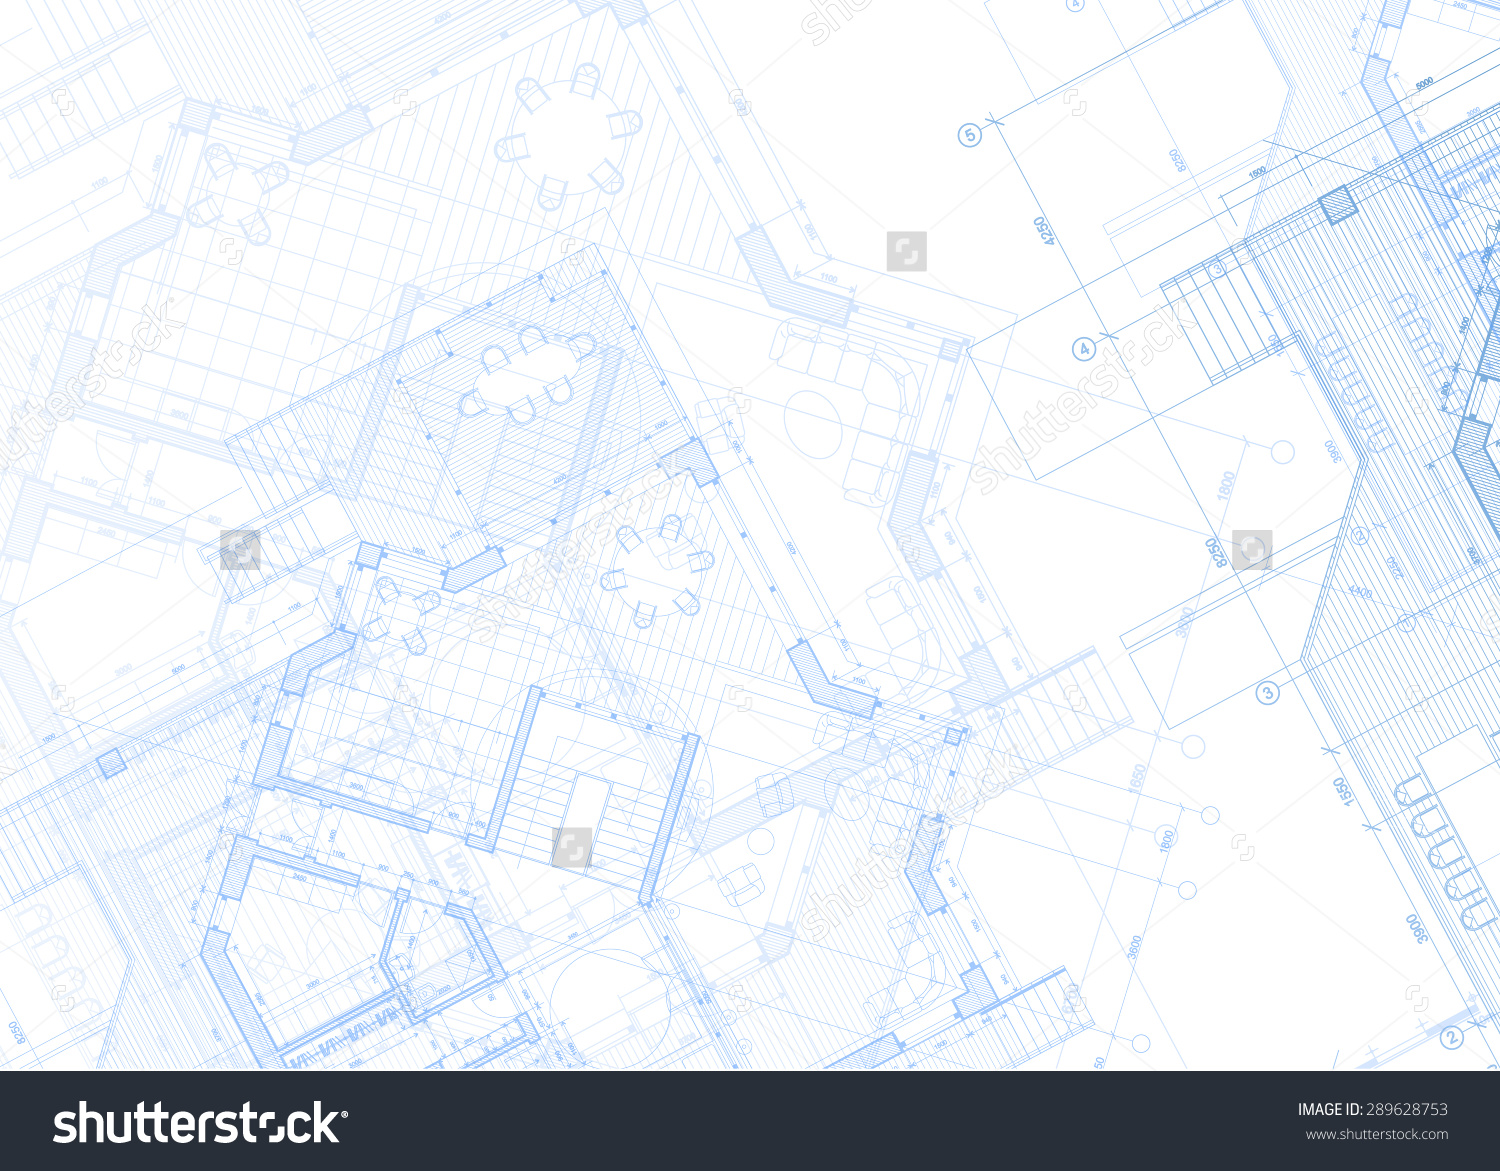 Stock vector architecture design blueprint plans vector illustration leave a reply cancel reply malvernweather Images